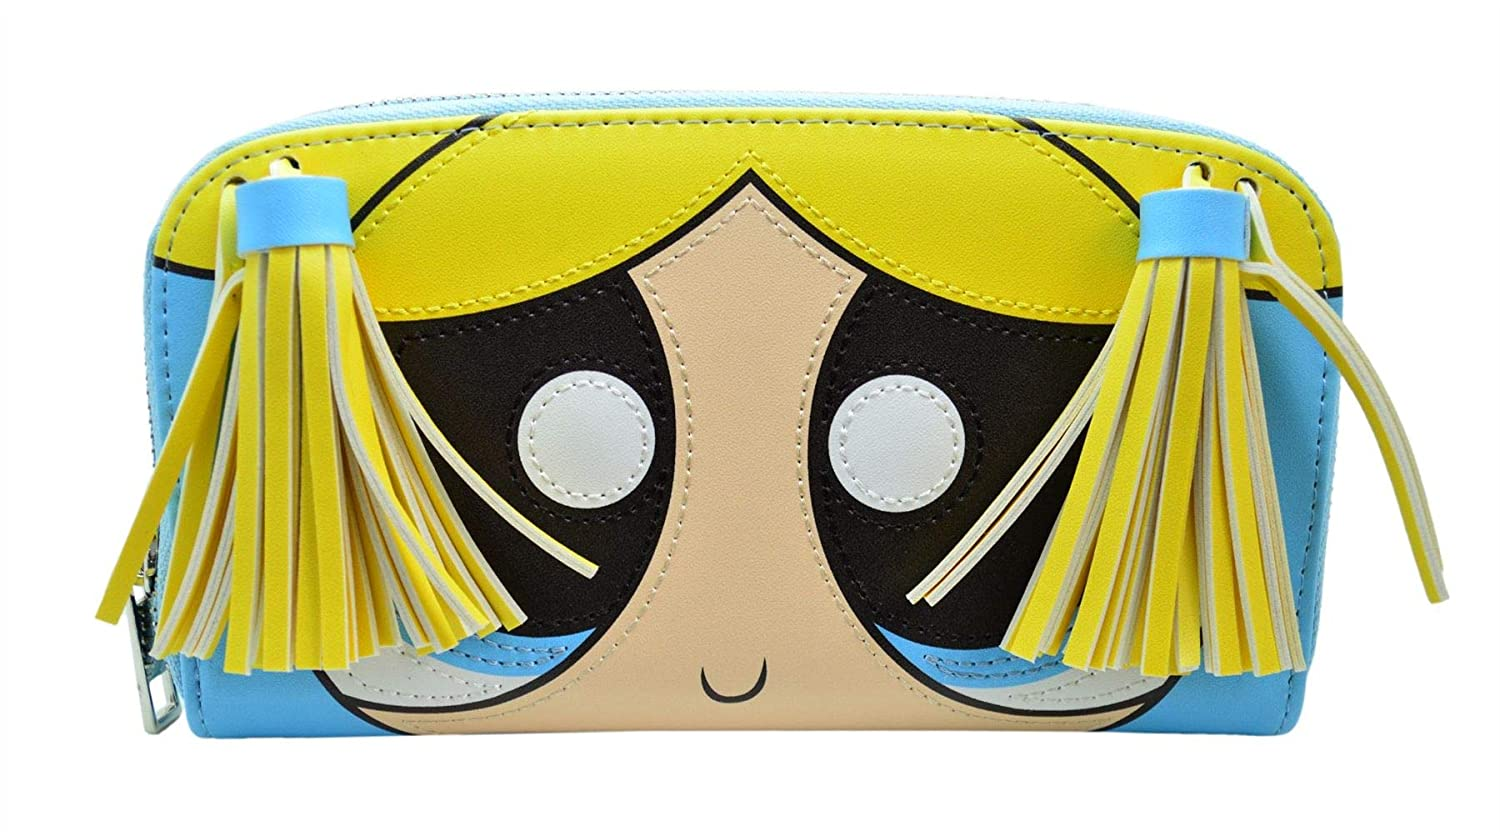 Officiel The Powerpuff Girls Purse Porte-monnaie Portefeuille- Bubbles